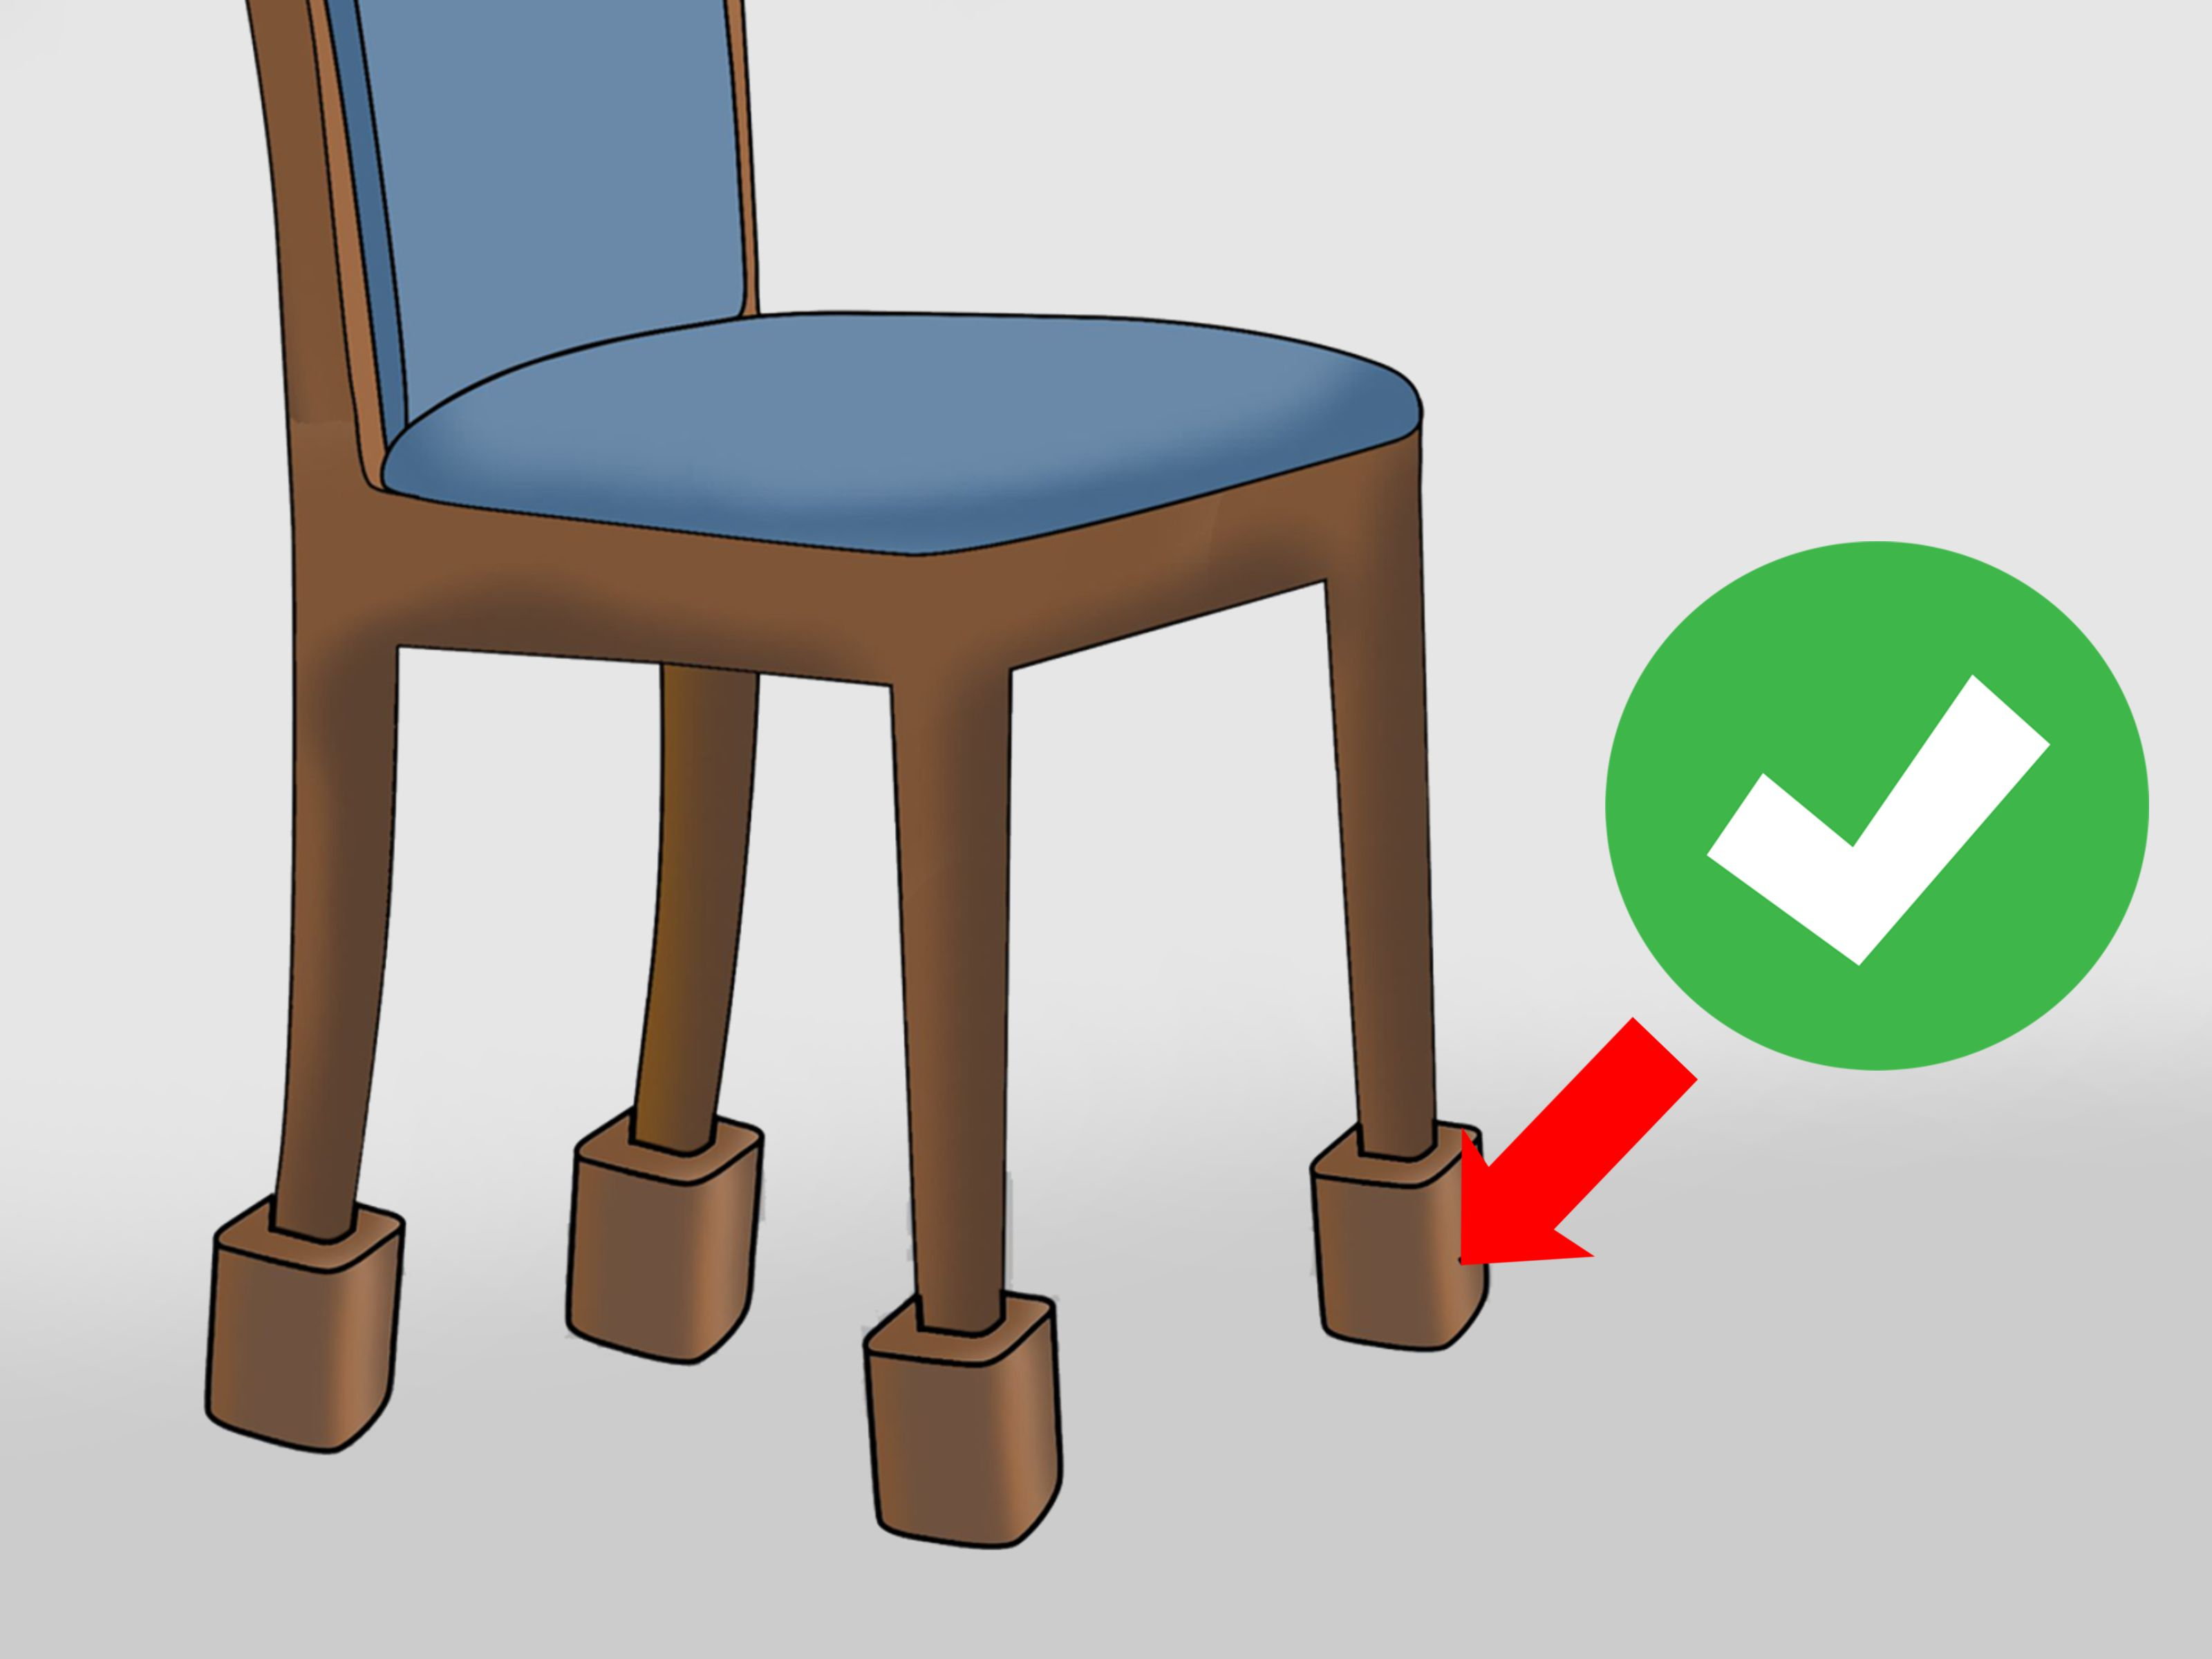 dining chairs 2 x 4 chair 3 ways to increase the height of wikihow how